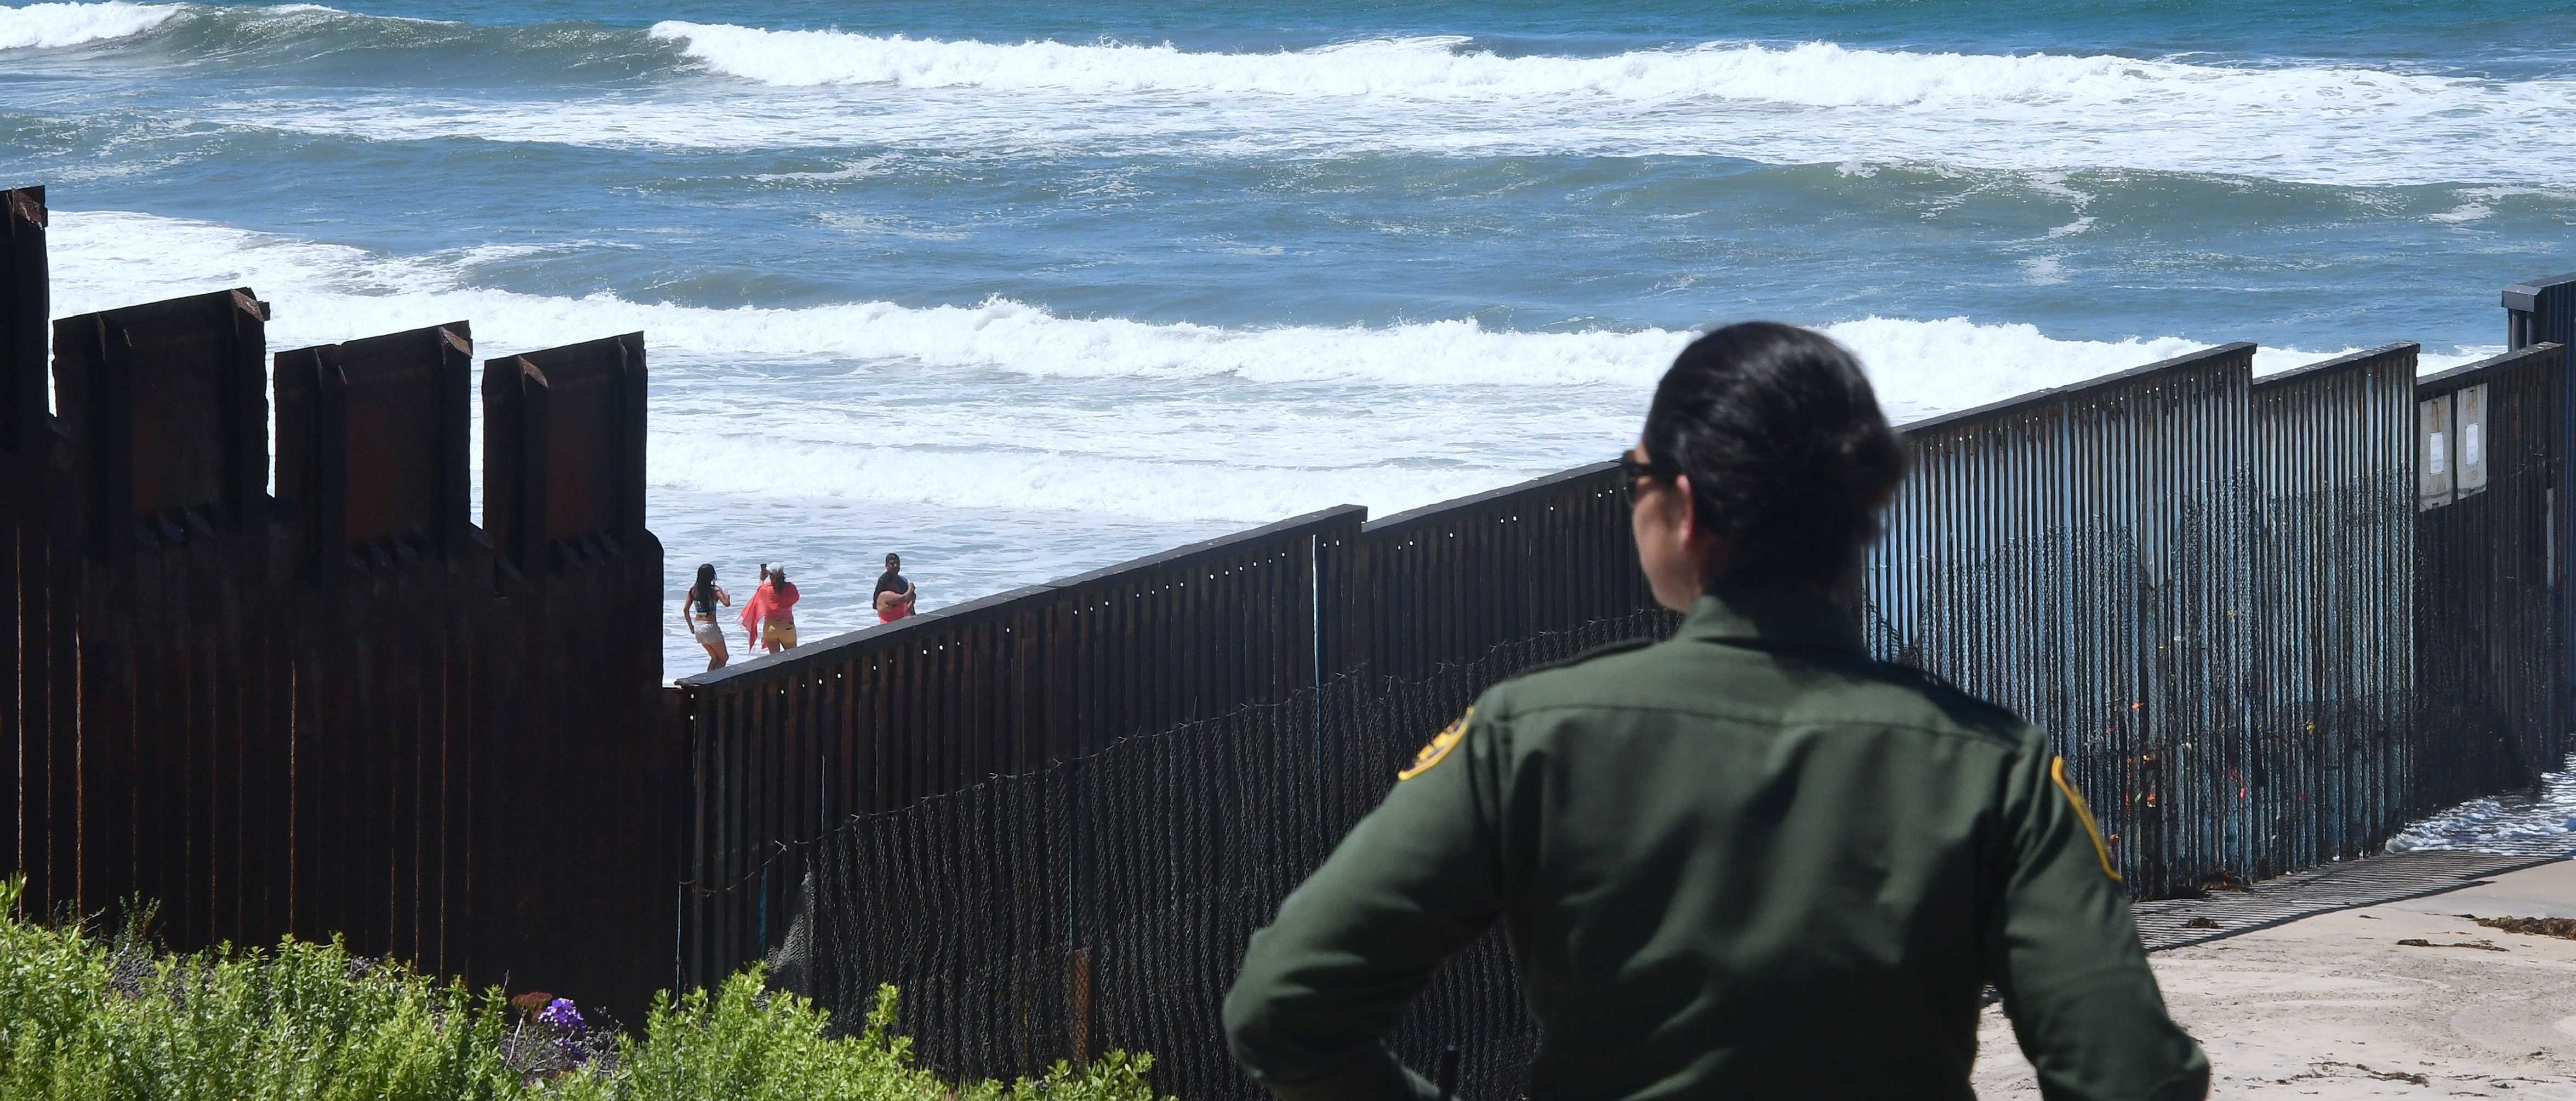 TOPSHOT - A US Customs and Border Protection agent watches from near the end of the border structure which runs into the Pacific Ocean in San Diego, California as people visit the beach in La Playa, Mexico on April 17, 2018 a day after California rejected plans by the federal government for National Guard troops on the border. (Photo by FREDERIC J. BROWN / AFP) (Photo credit should read FREDERIC J. BROWN/AFP/Getty Images)